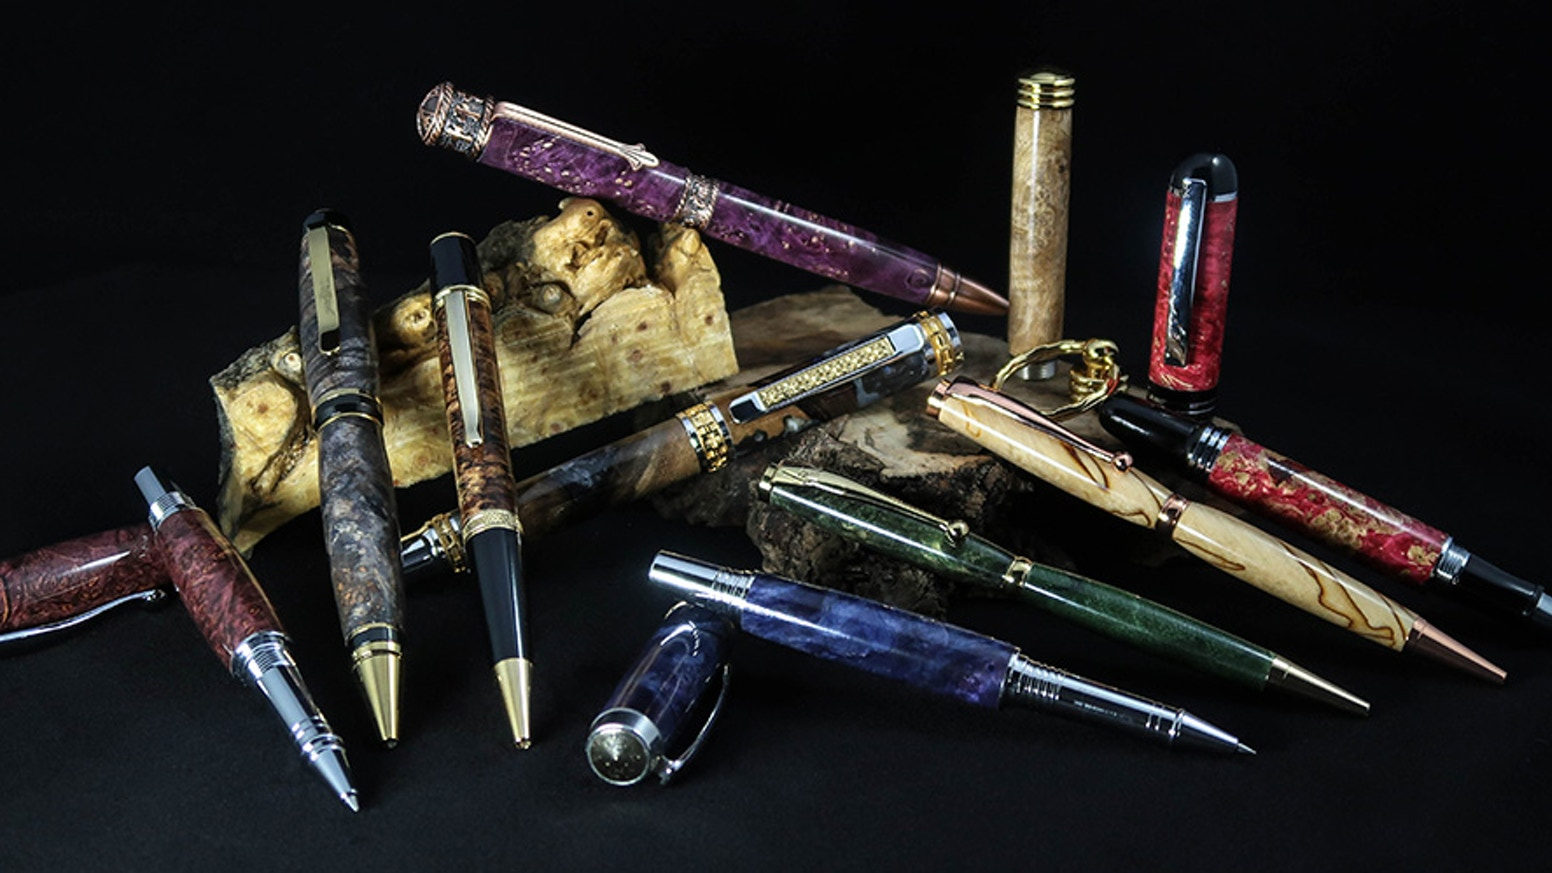 Beautiful handmade pens made from exotic & domestic hardwood burls & spalted woods. If you missed this project, you can order penz at the site below. Follow us on Facebook, Twitter, and Instagram.